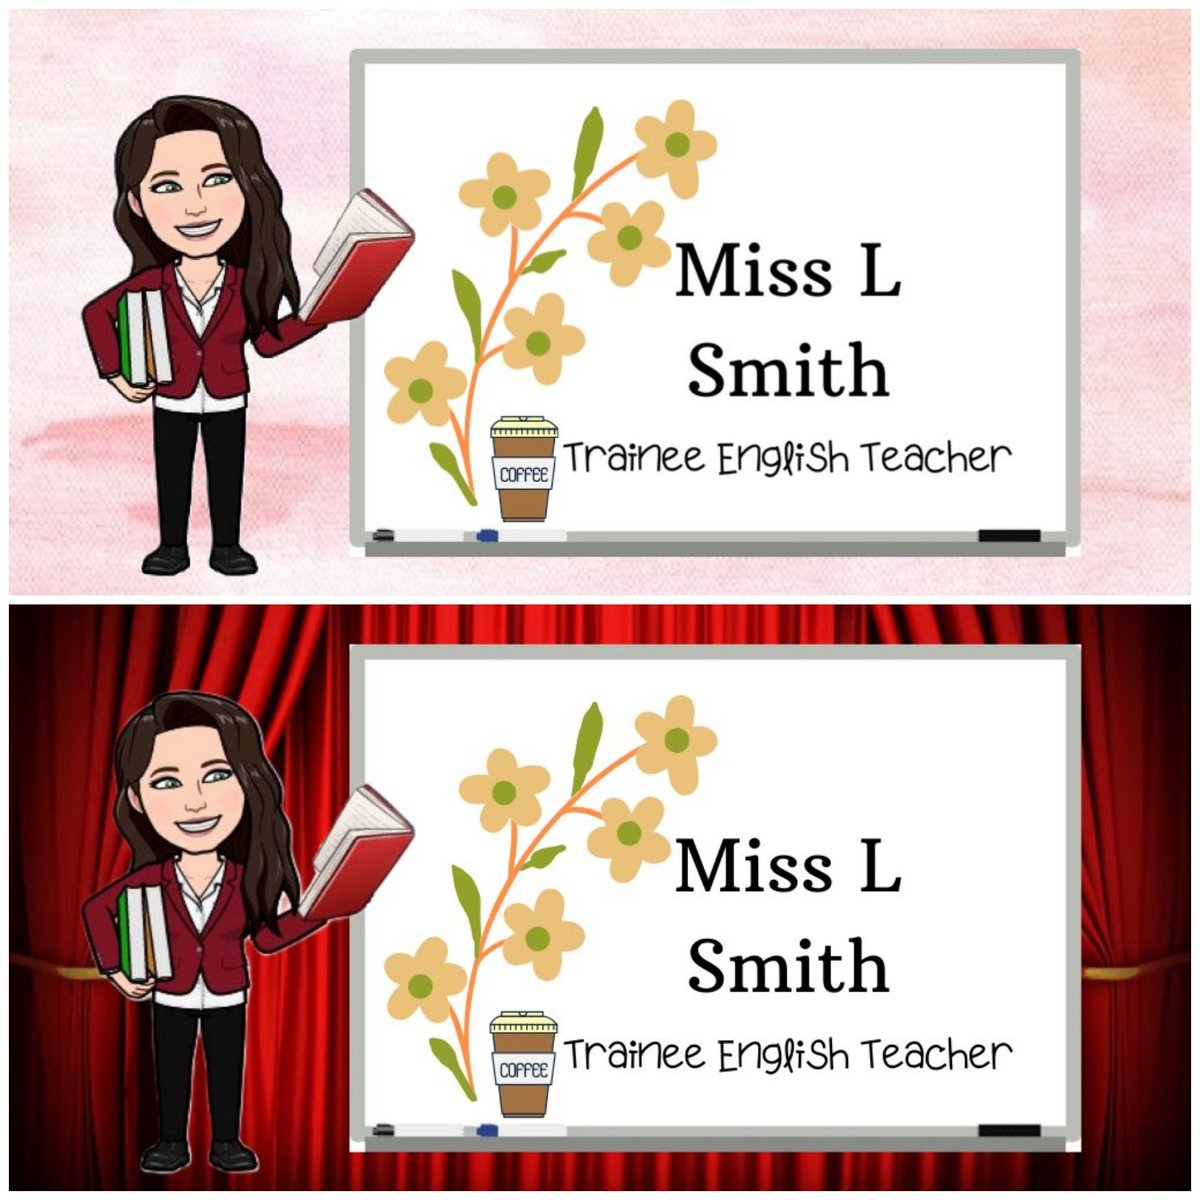 How amazing are these personalised headers @missnormally_ made for me? So incredibly sweet and talented ✨